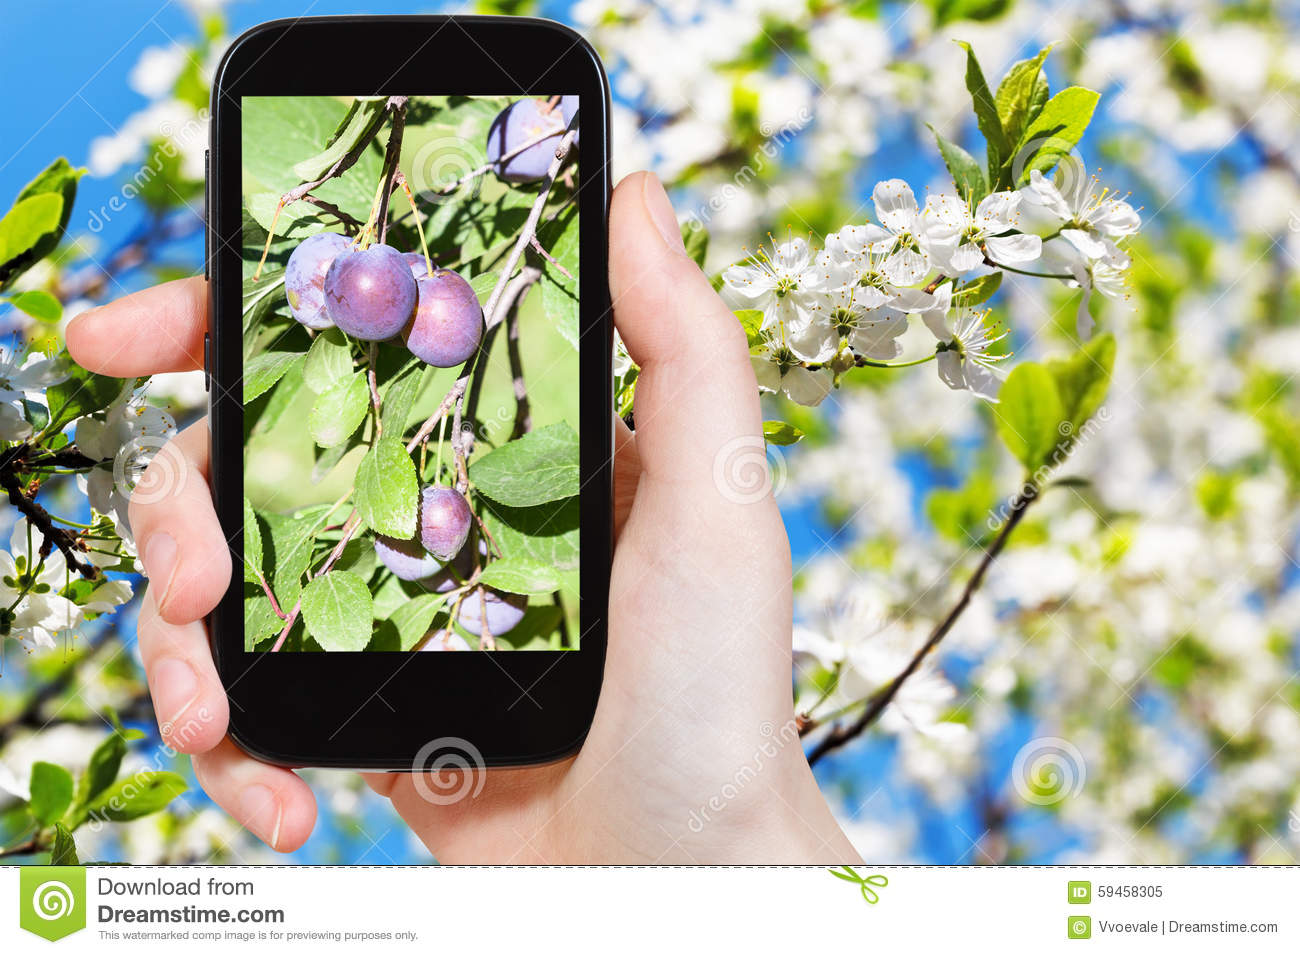 Photo Of Ripe Plums On Tree With Blossoms Stock Photo